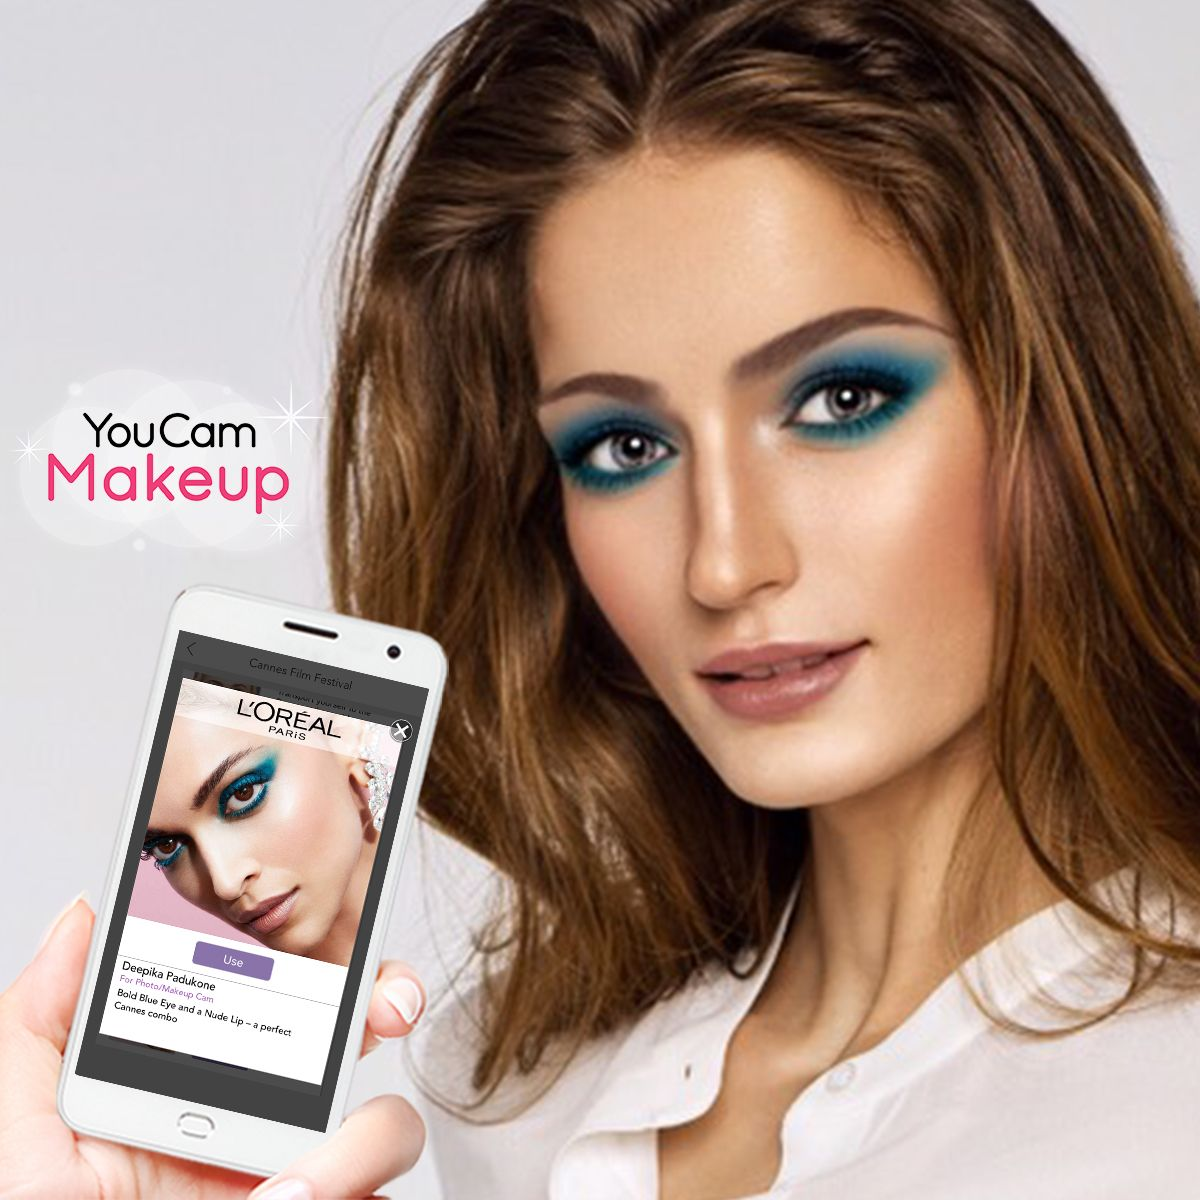 Pin by YouCam Apps on YouCam Makeup | Makeup app, Loreal